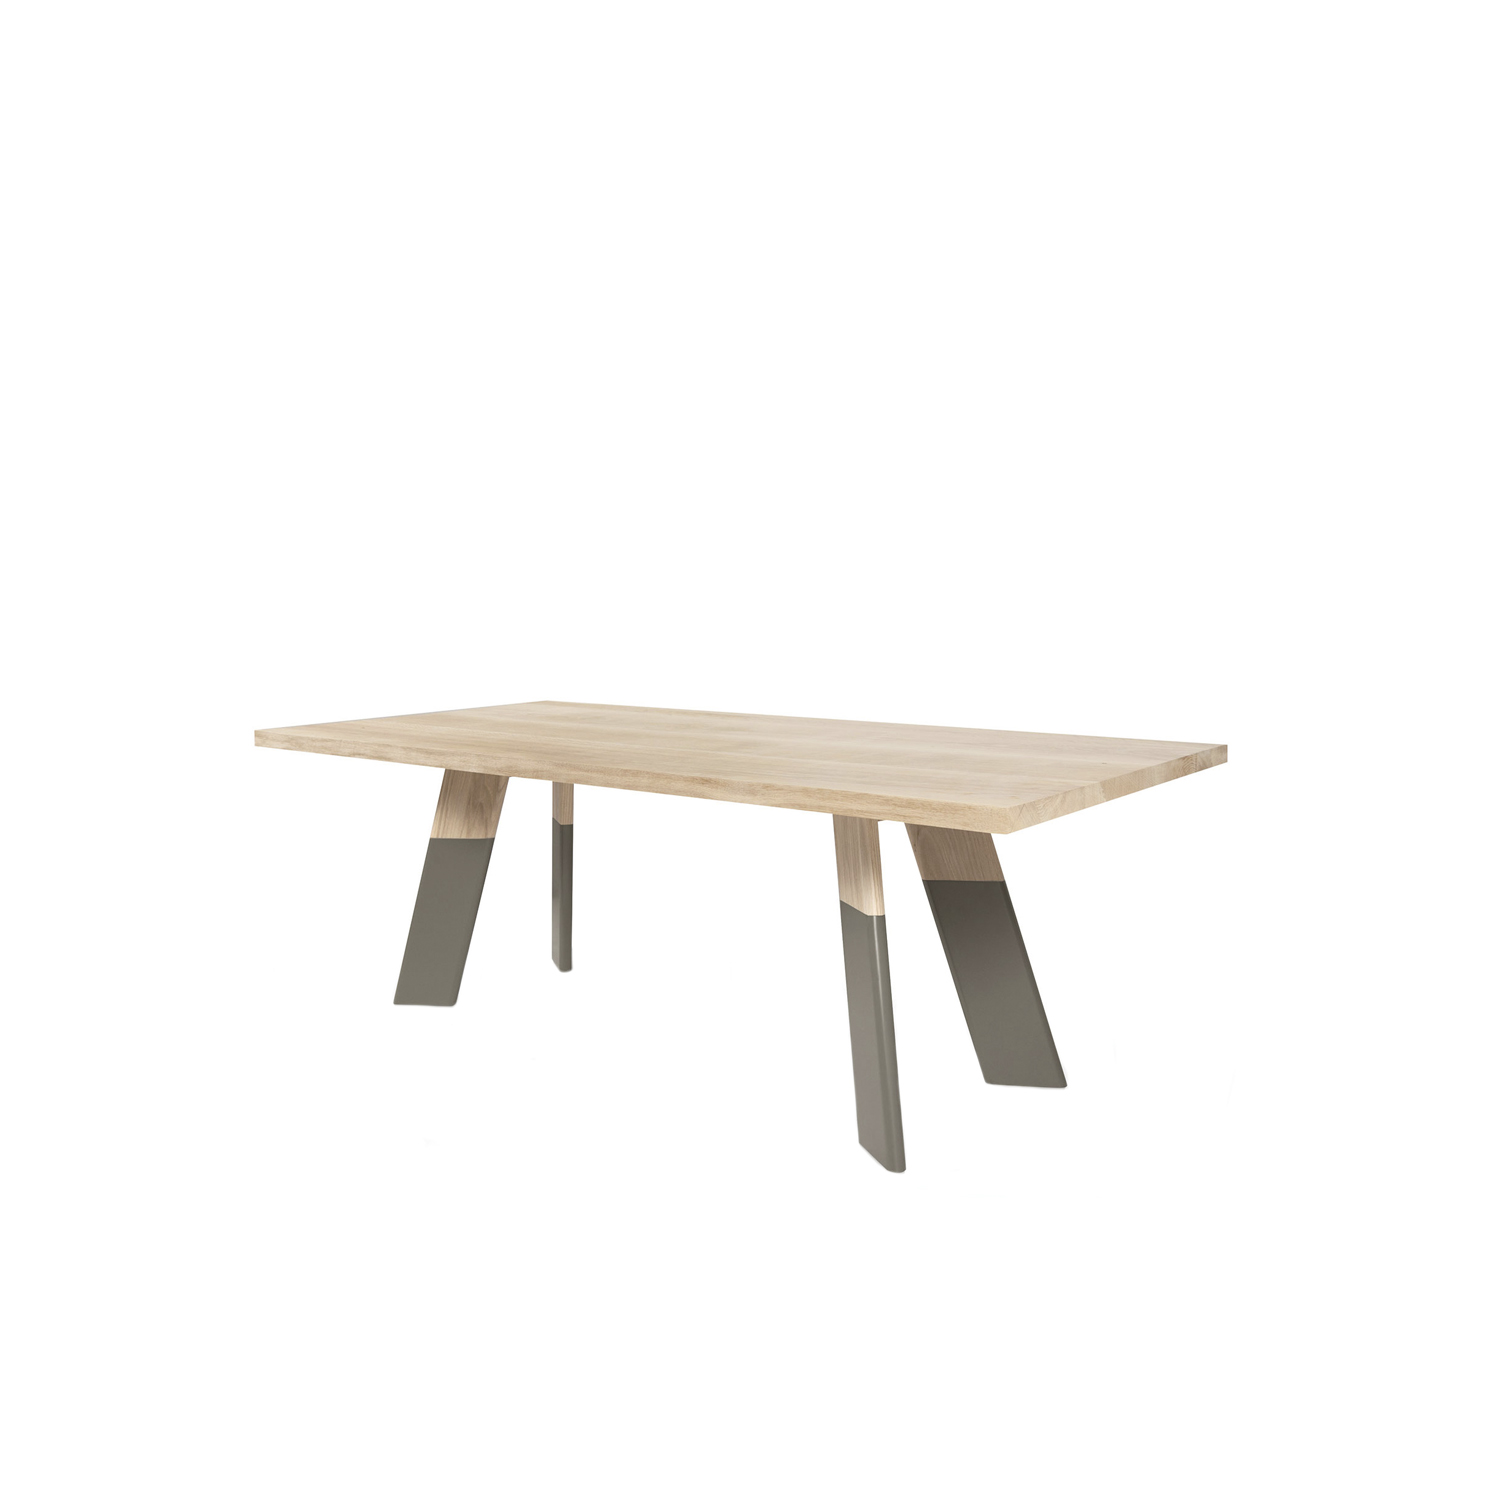 Alhambra 001 B Dining Table - Table in various sizes with shaped rectangular top with a thin edge, legs in two sections or unique section, lacquered or solid wood.